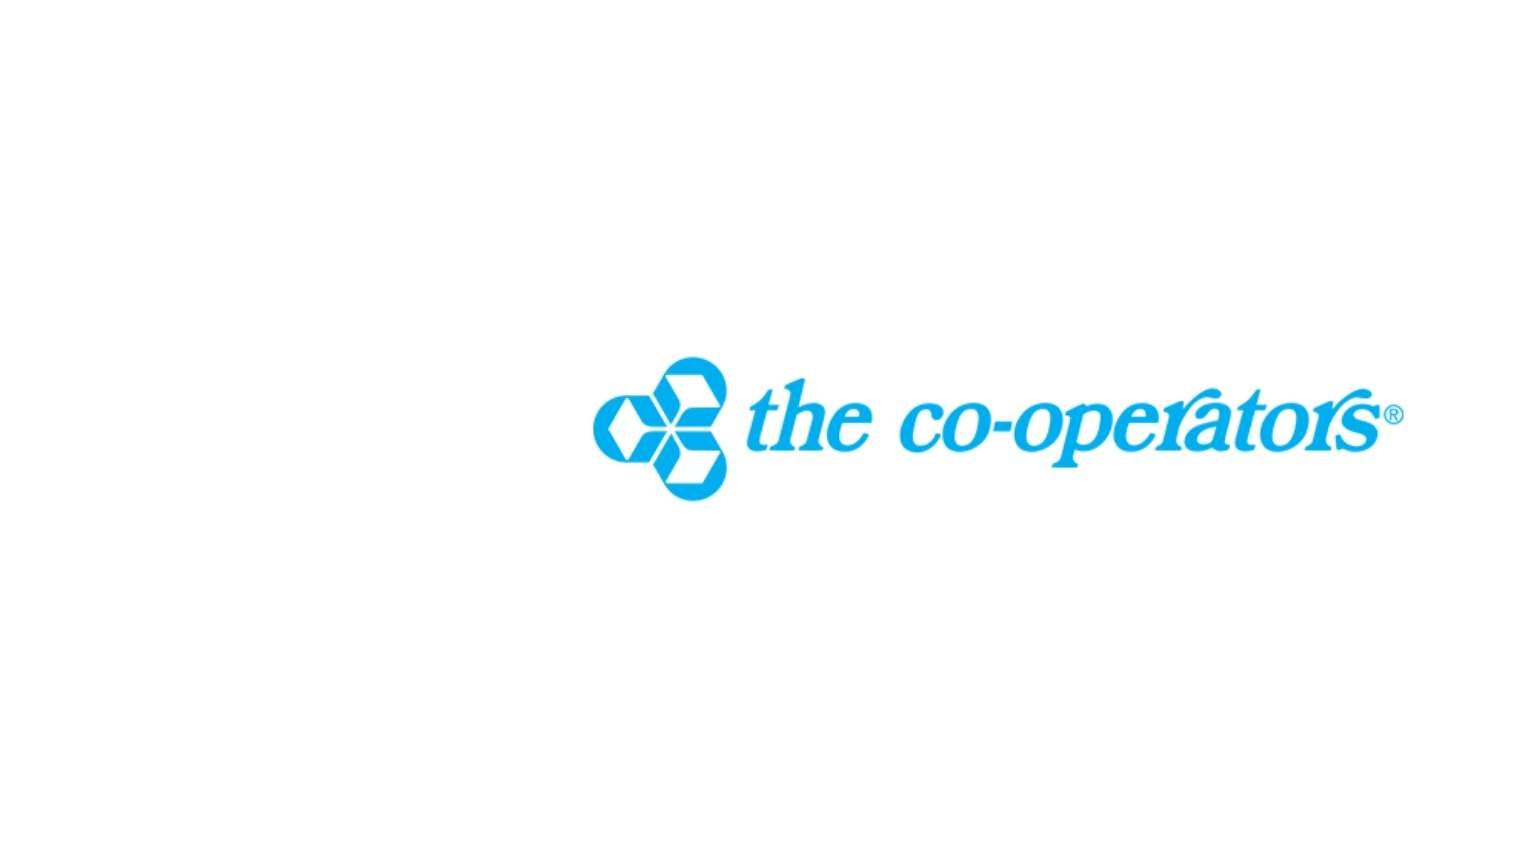 Co-operators Logo